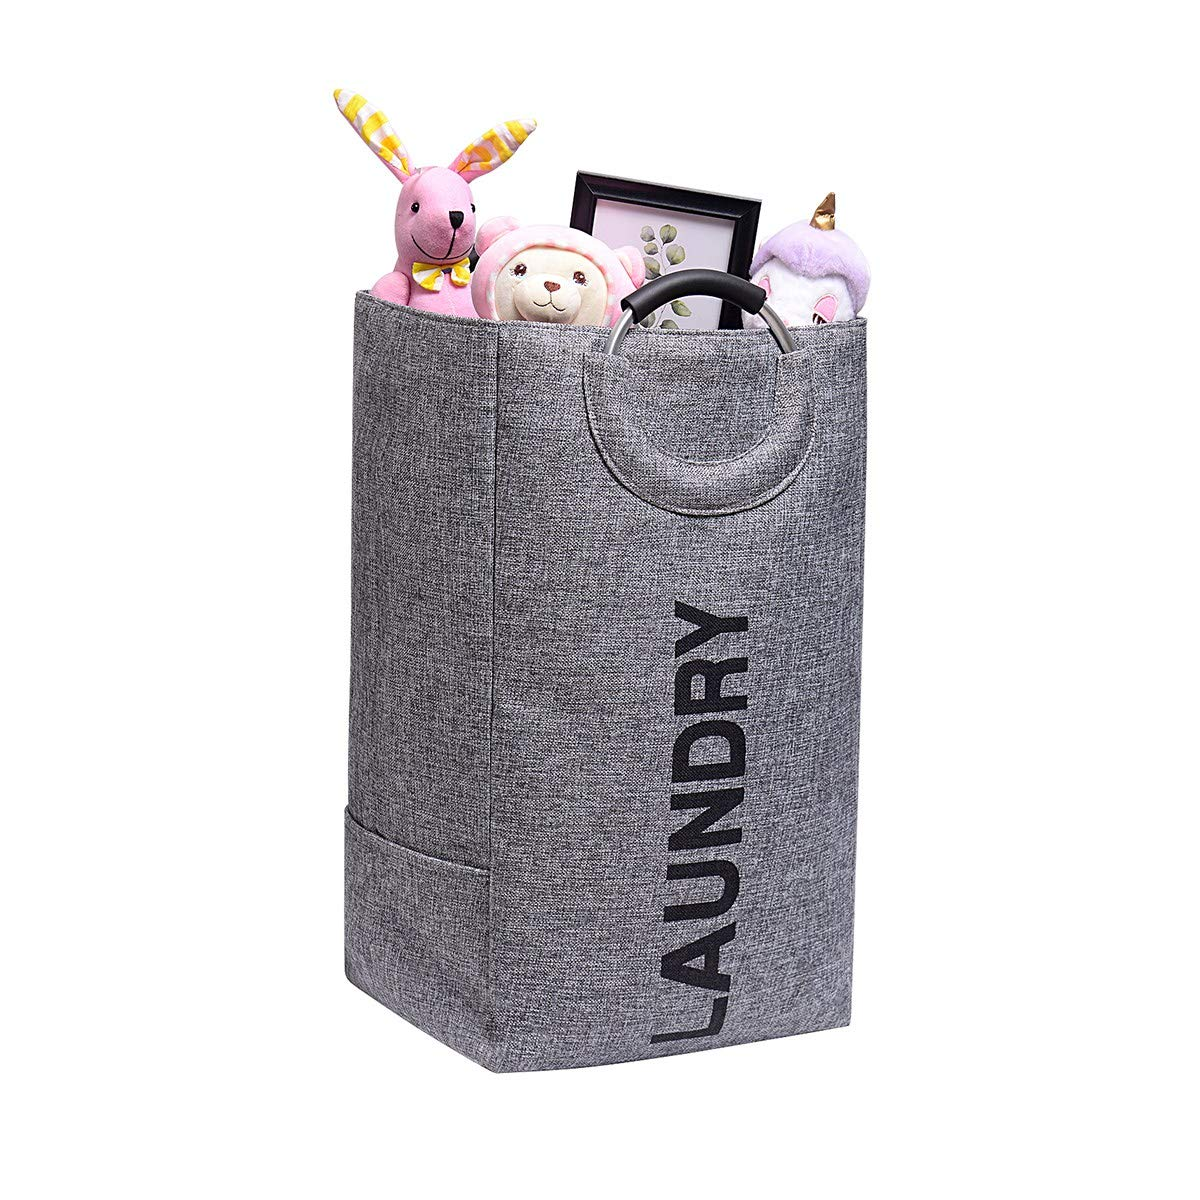 Home.1986 Collapsible Laundry Storage Basket 15x11.4x26 Large Gray Laundry Hamper Bag with Handle for Baby or Adult Dirty Clothes, Towel, Sheet, Washing